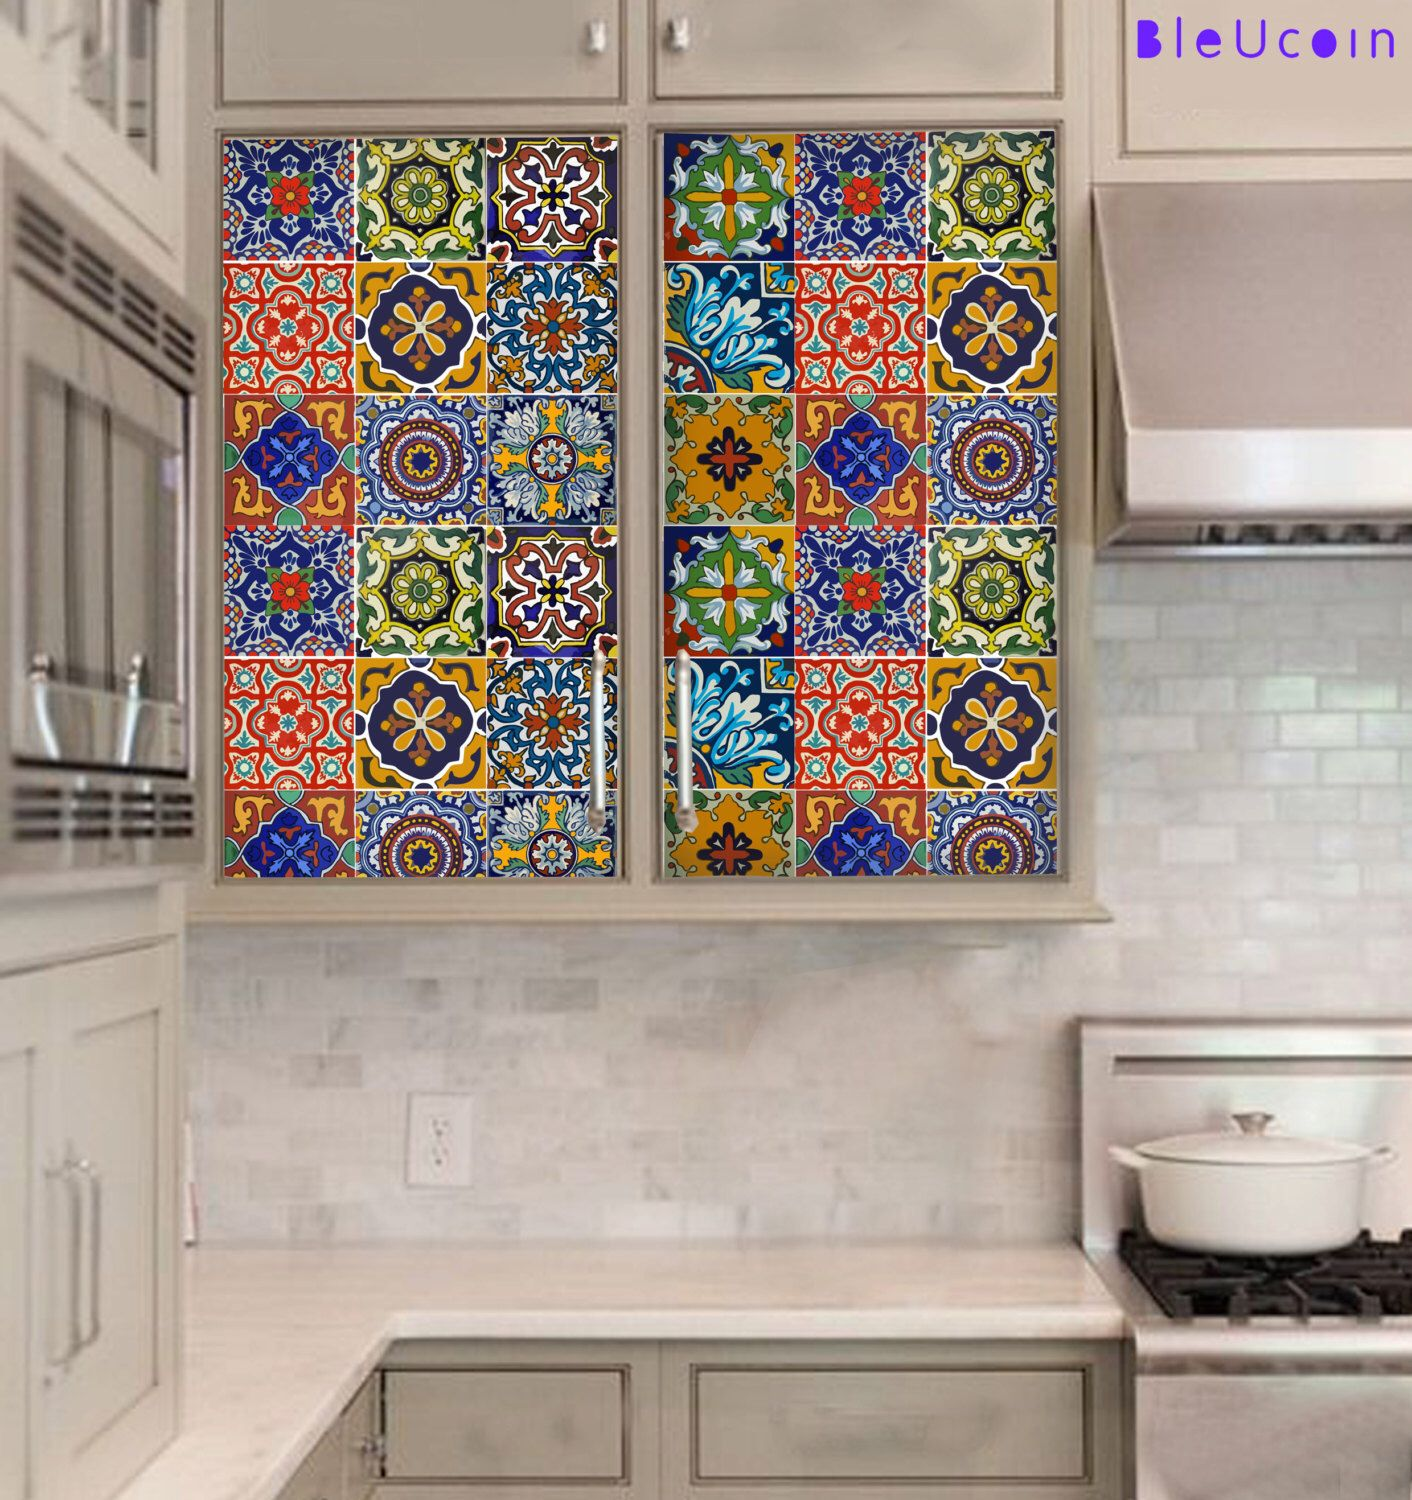 Greece Kitchen Bathroom Floor Tile Wall Stickers Removable Antique Style Decals Pack Of 44 Tile Decals Tiles Wall Tiles